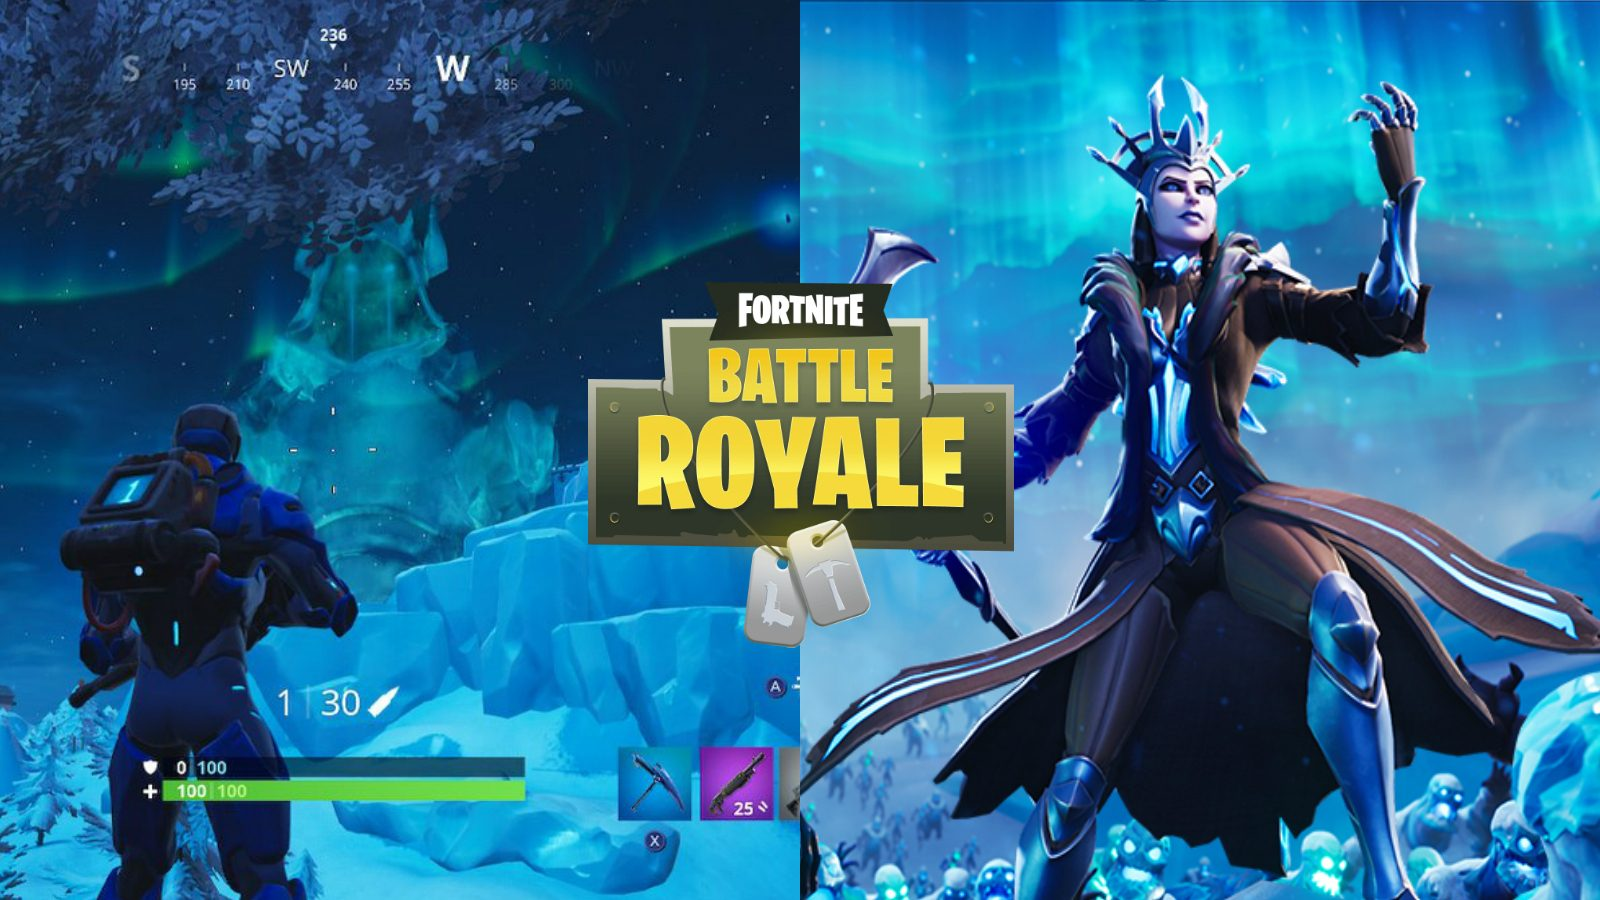 Ice King Fortnite Wallpaper Posted By Ryan Mercado